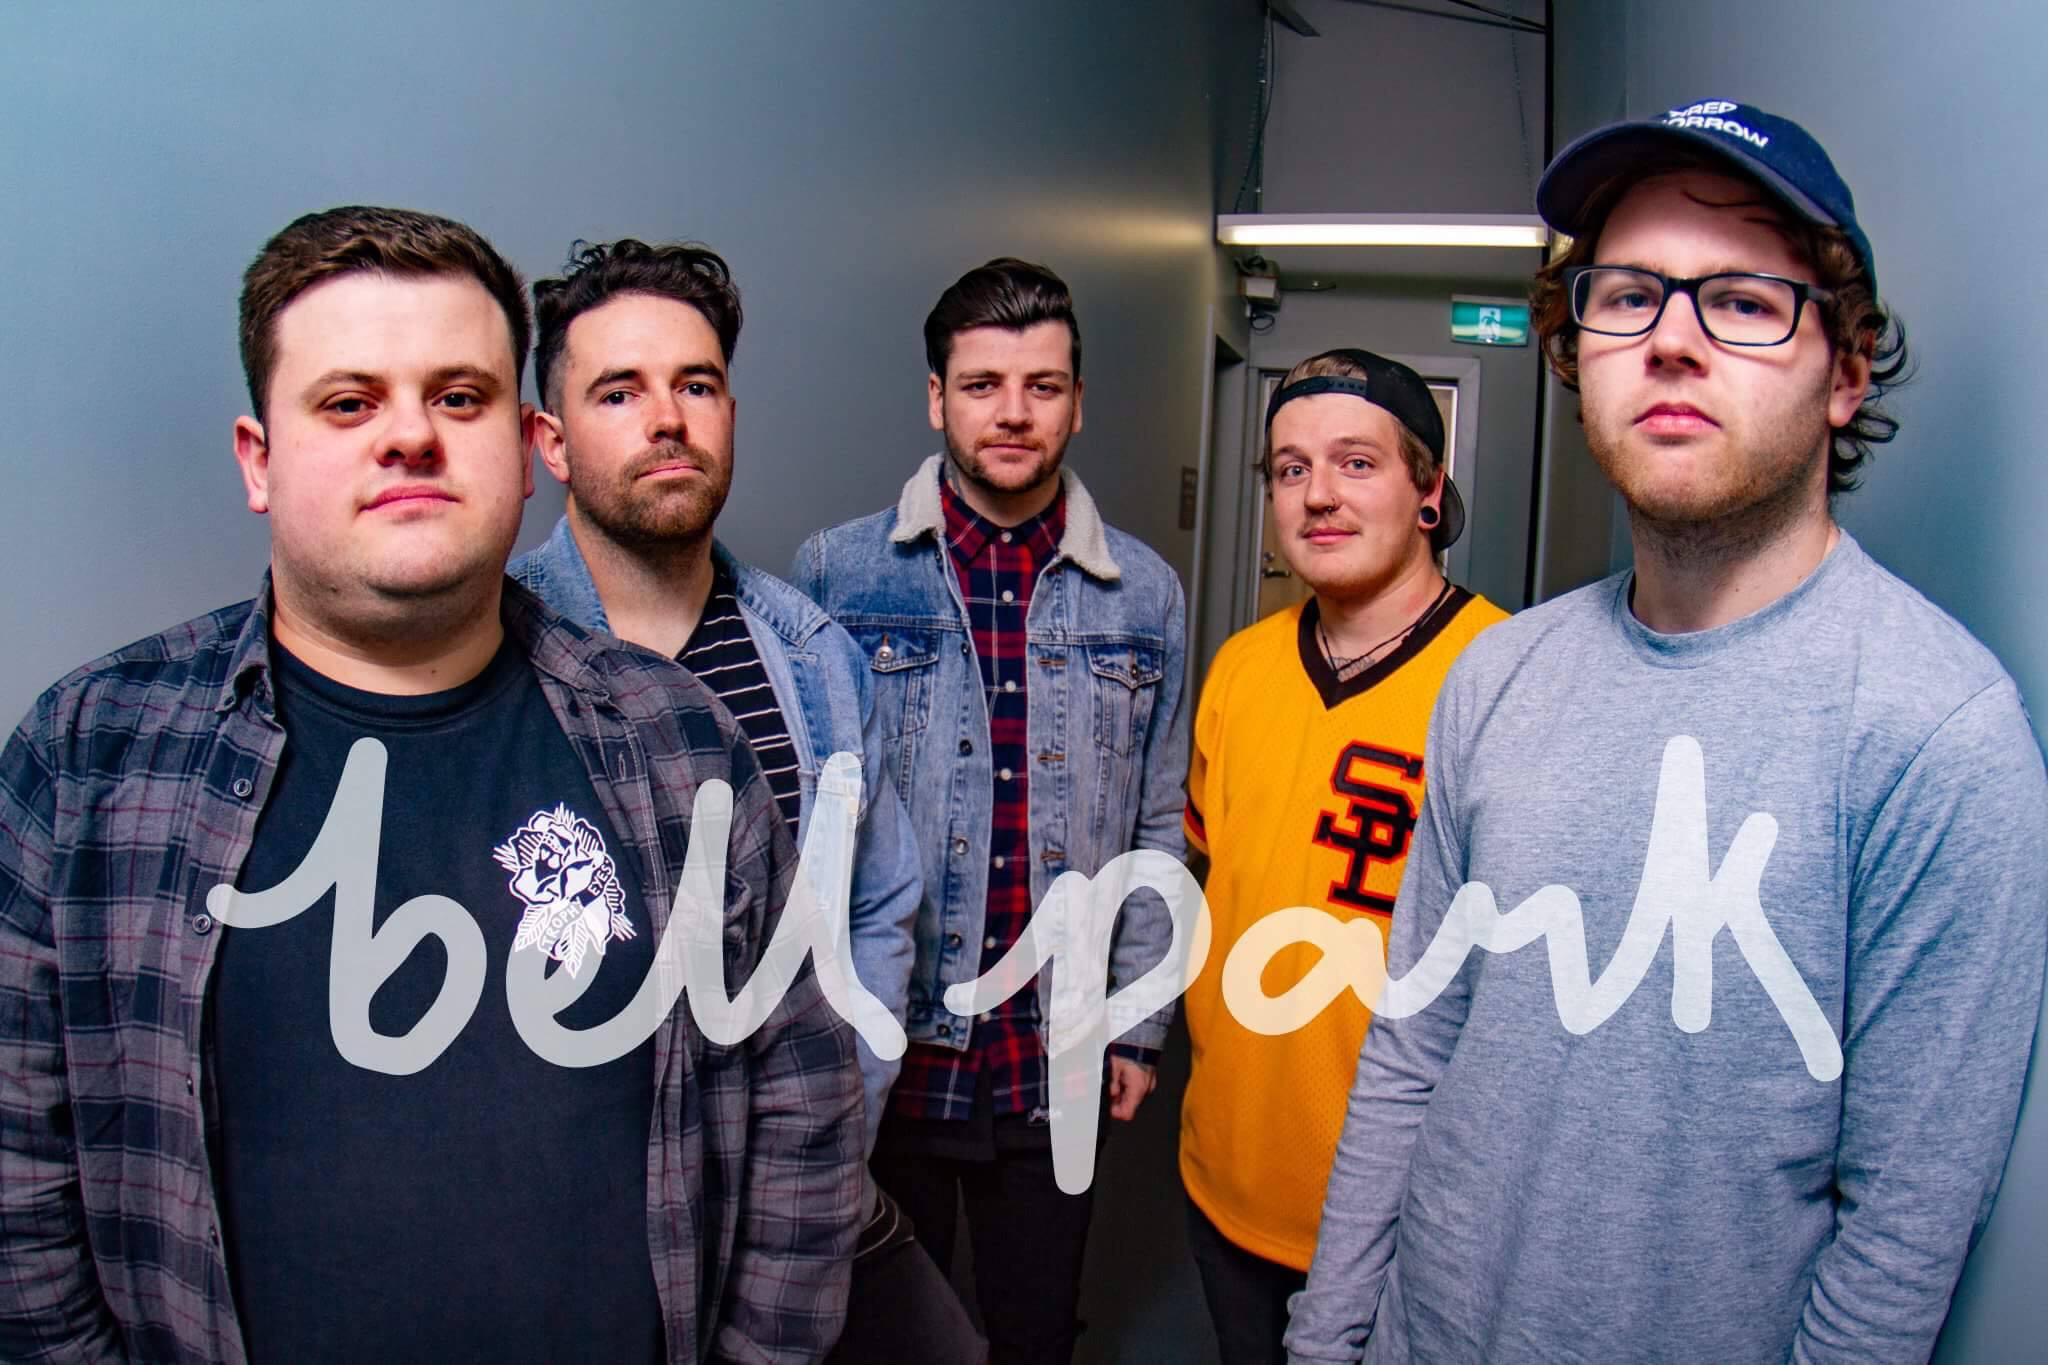 INTERVIEW – Bell Park